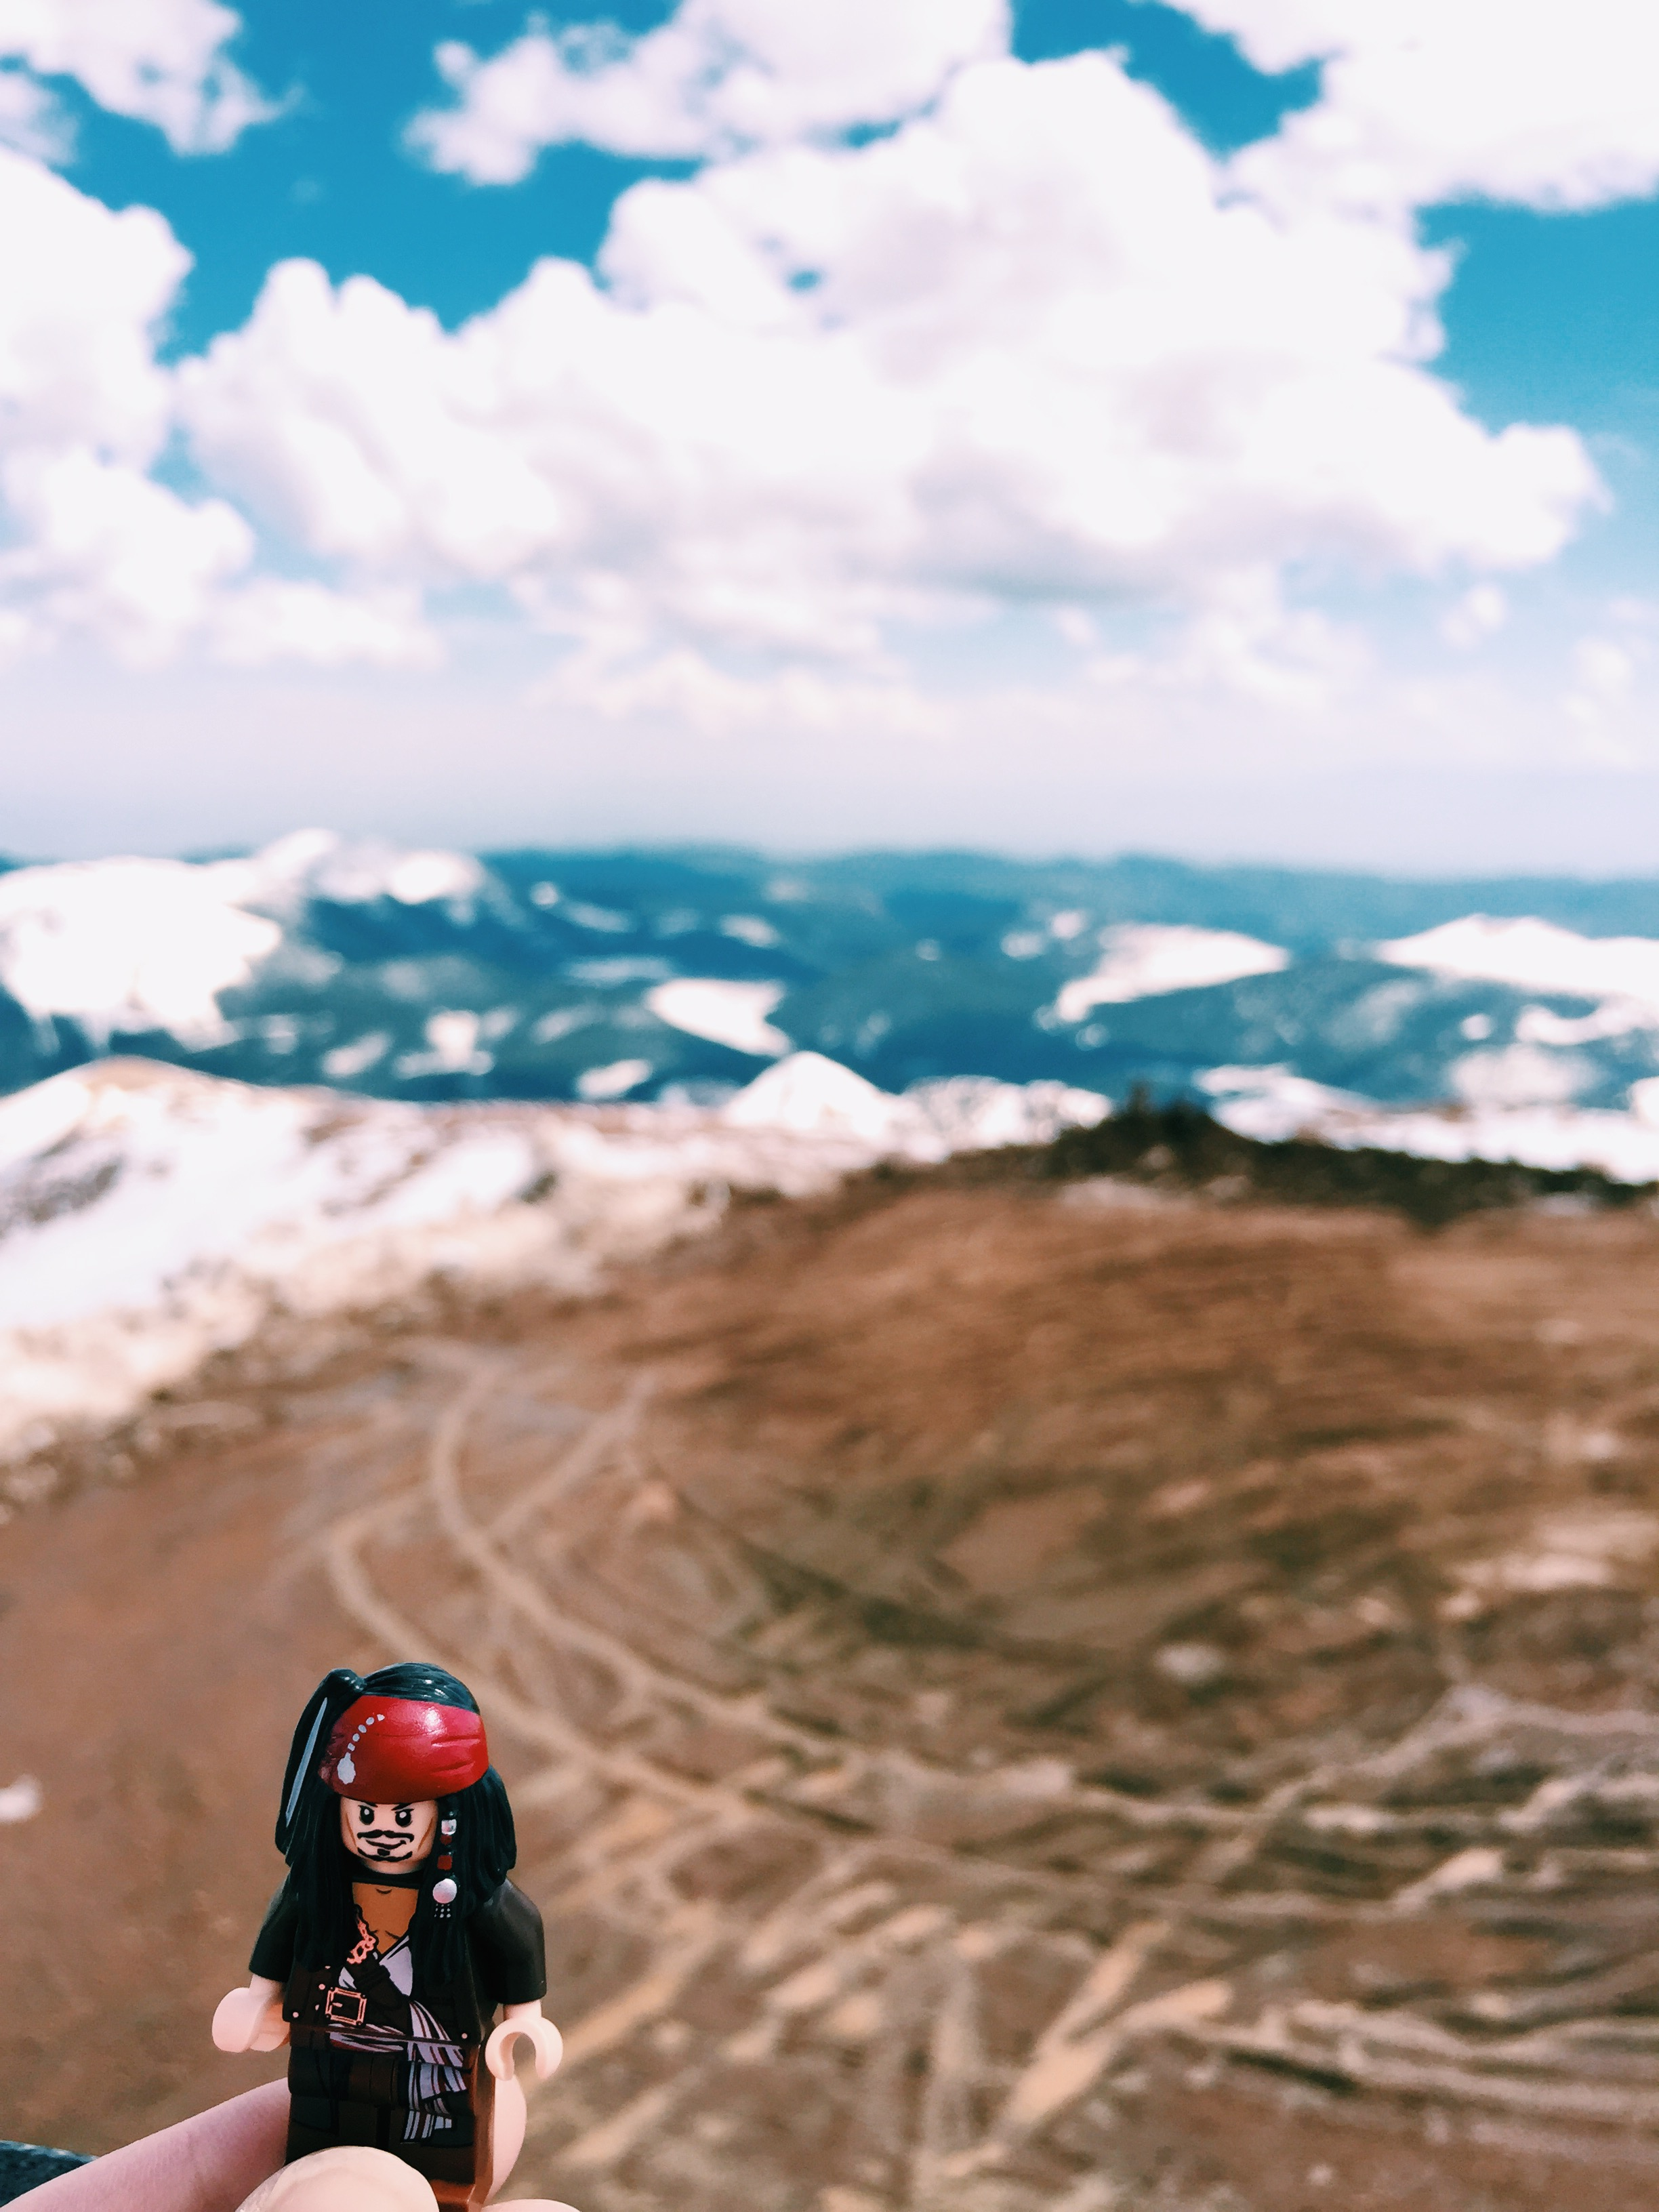 Jack enjoying the view from a snowy Pike's Peak.